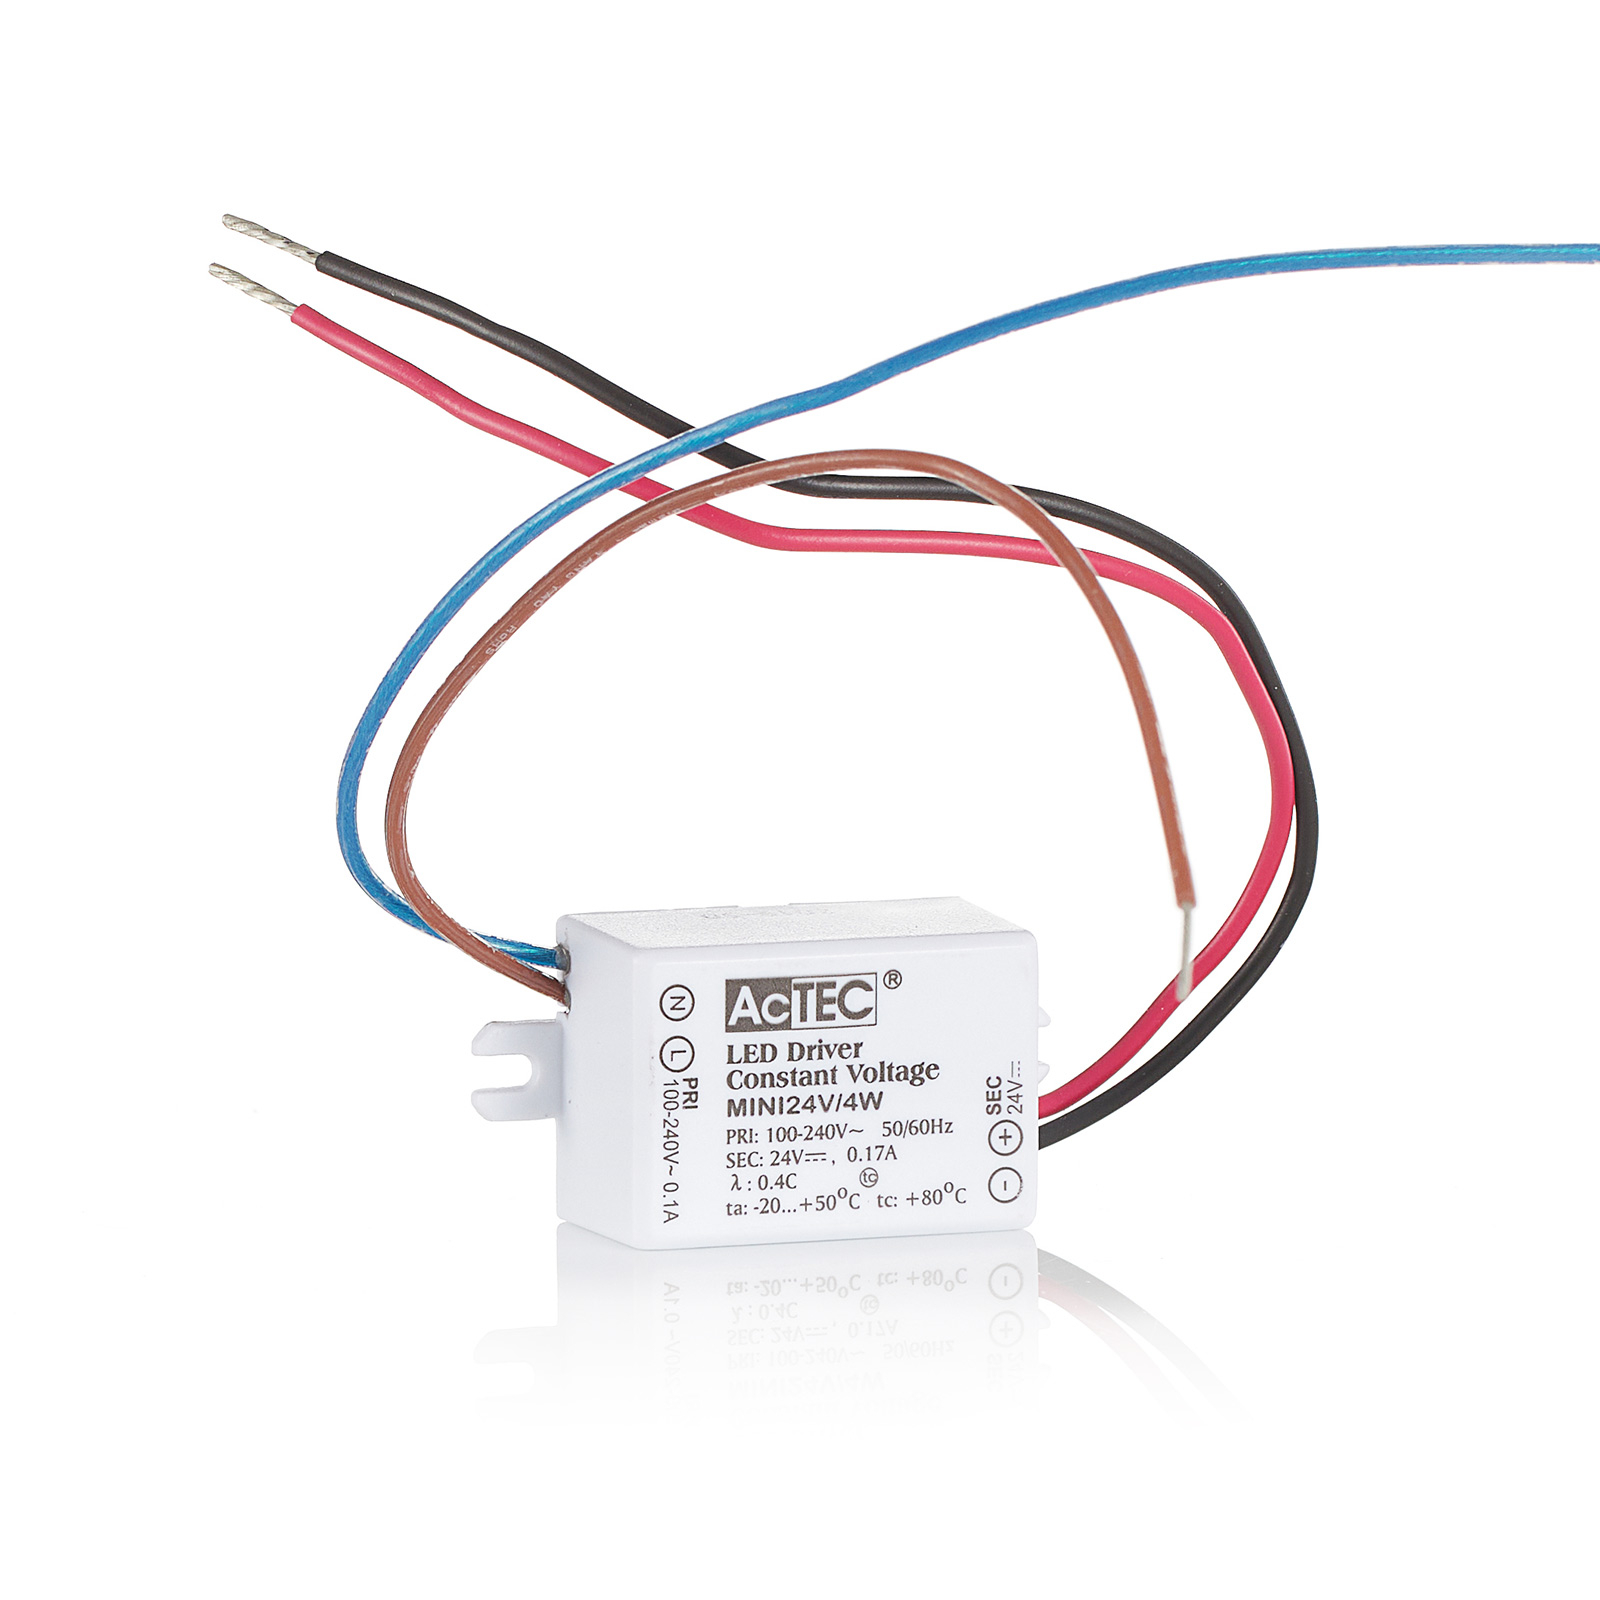 AcTEC Mini LED driver CV 24V, 4W IP65